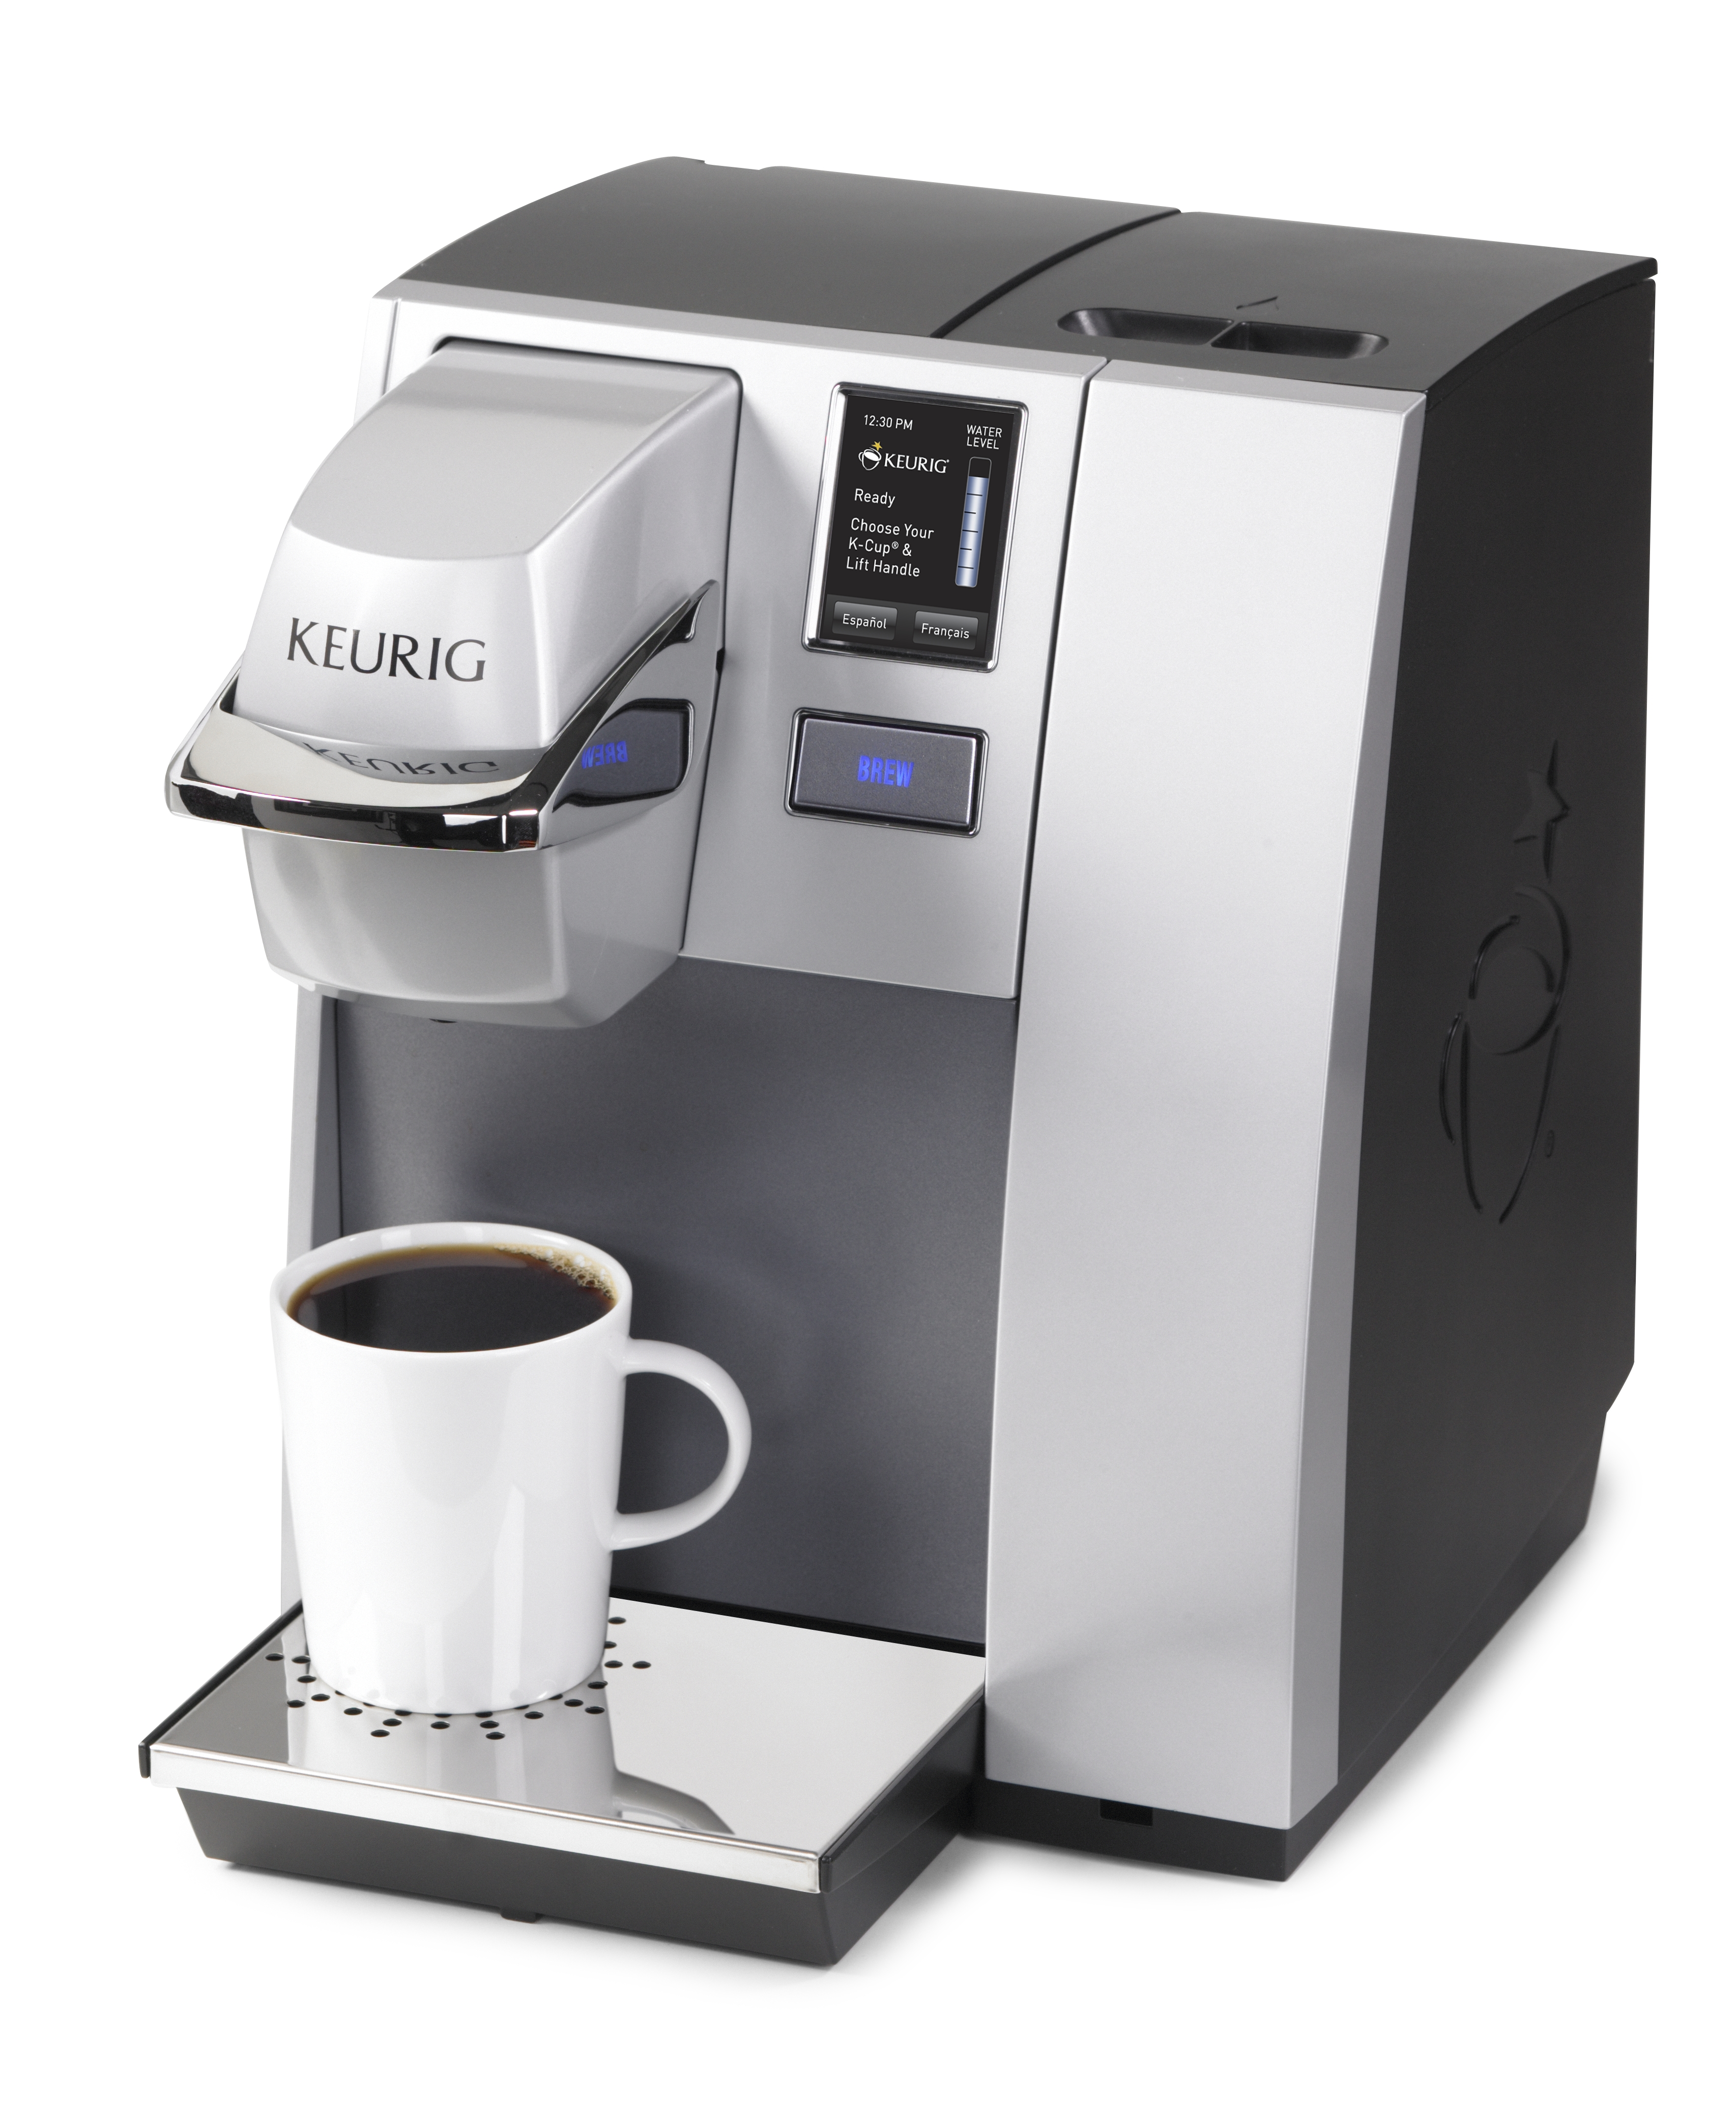 Office Coffee Maker Instructions : Keurig B155 Brewing System Review